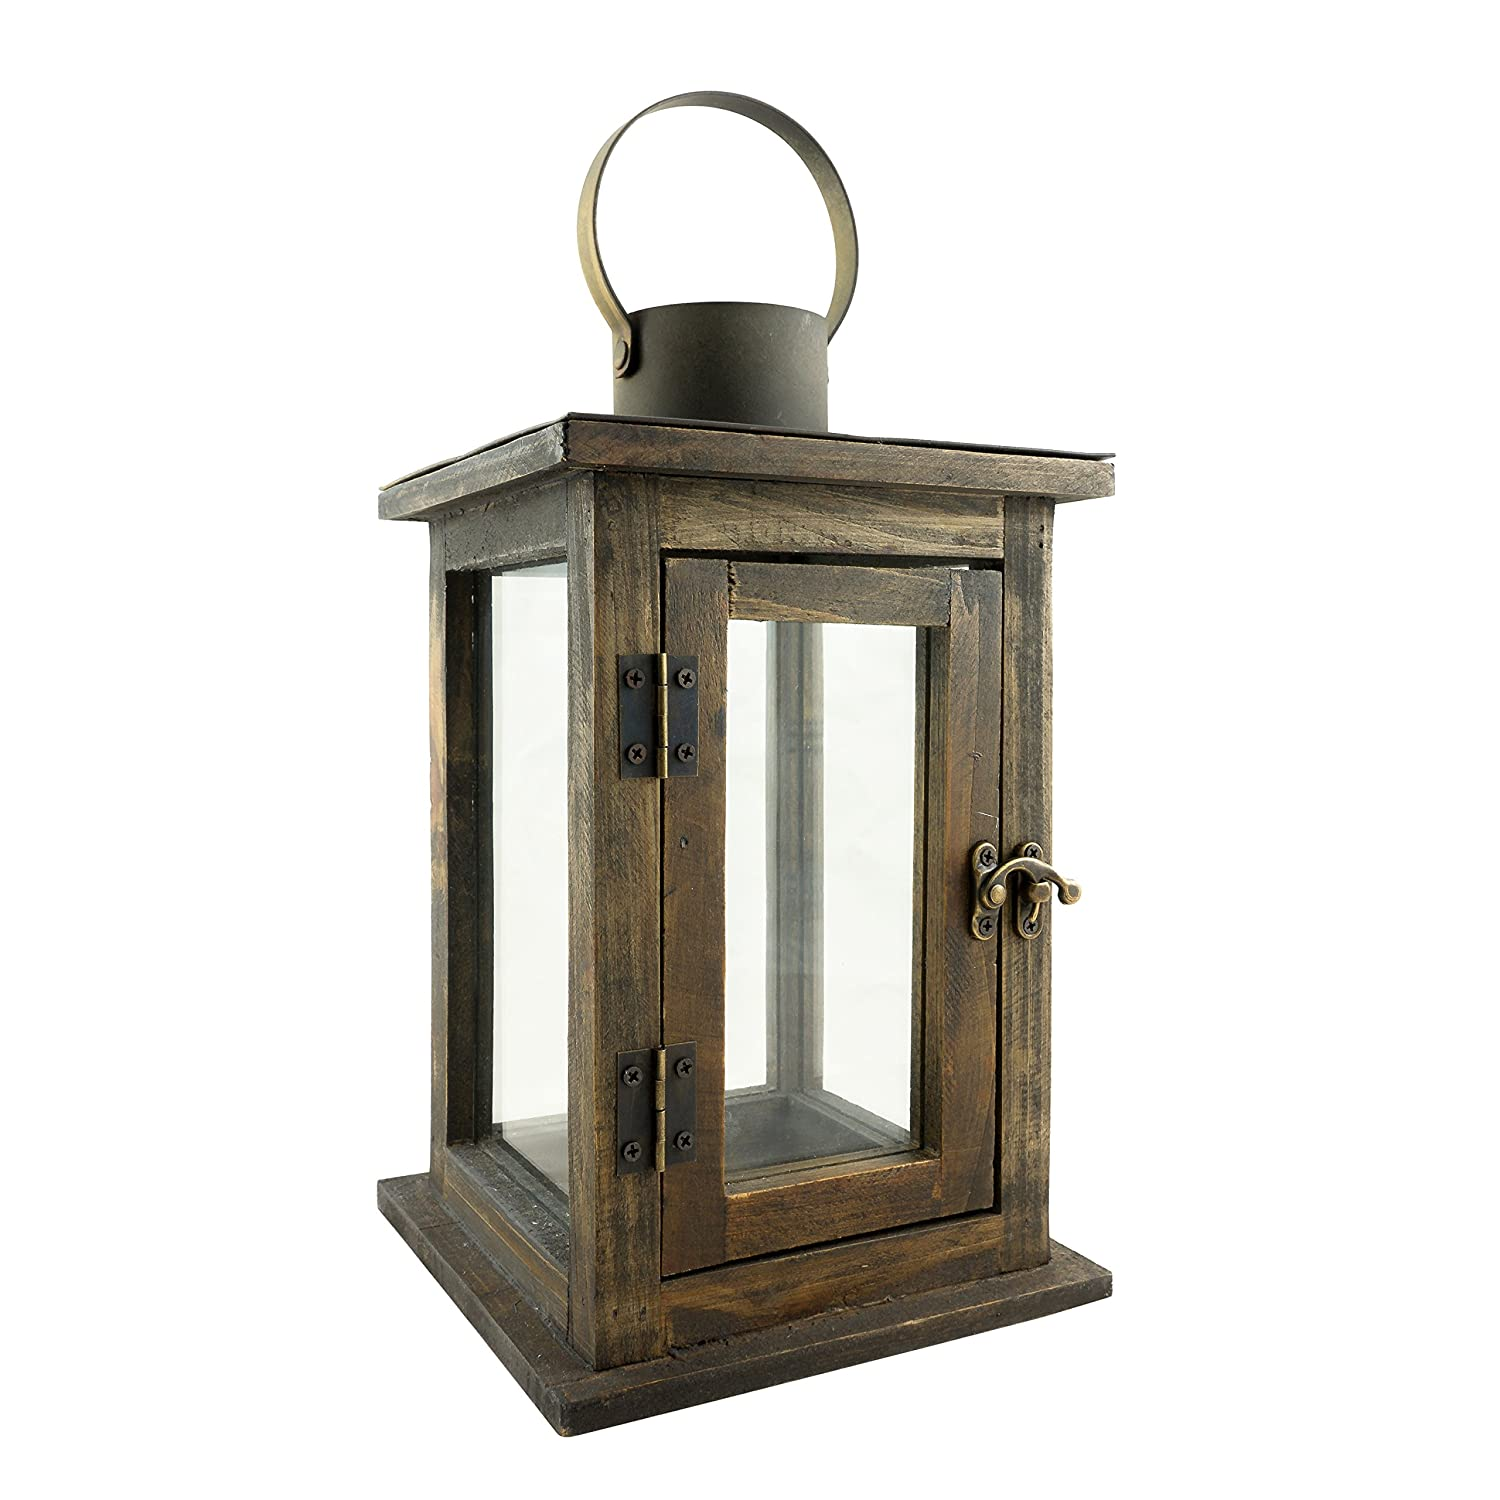 Rustic Wooden Hurricane Candle Lantern